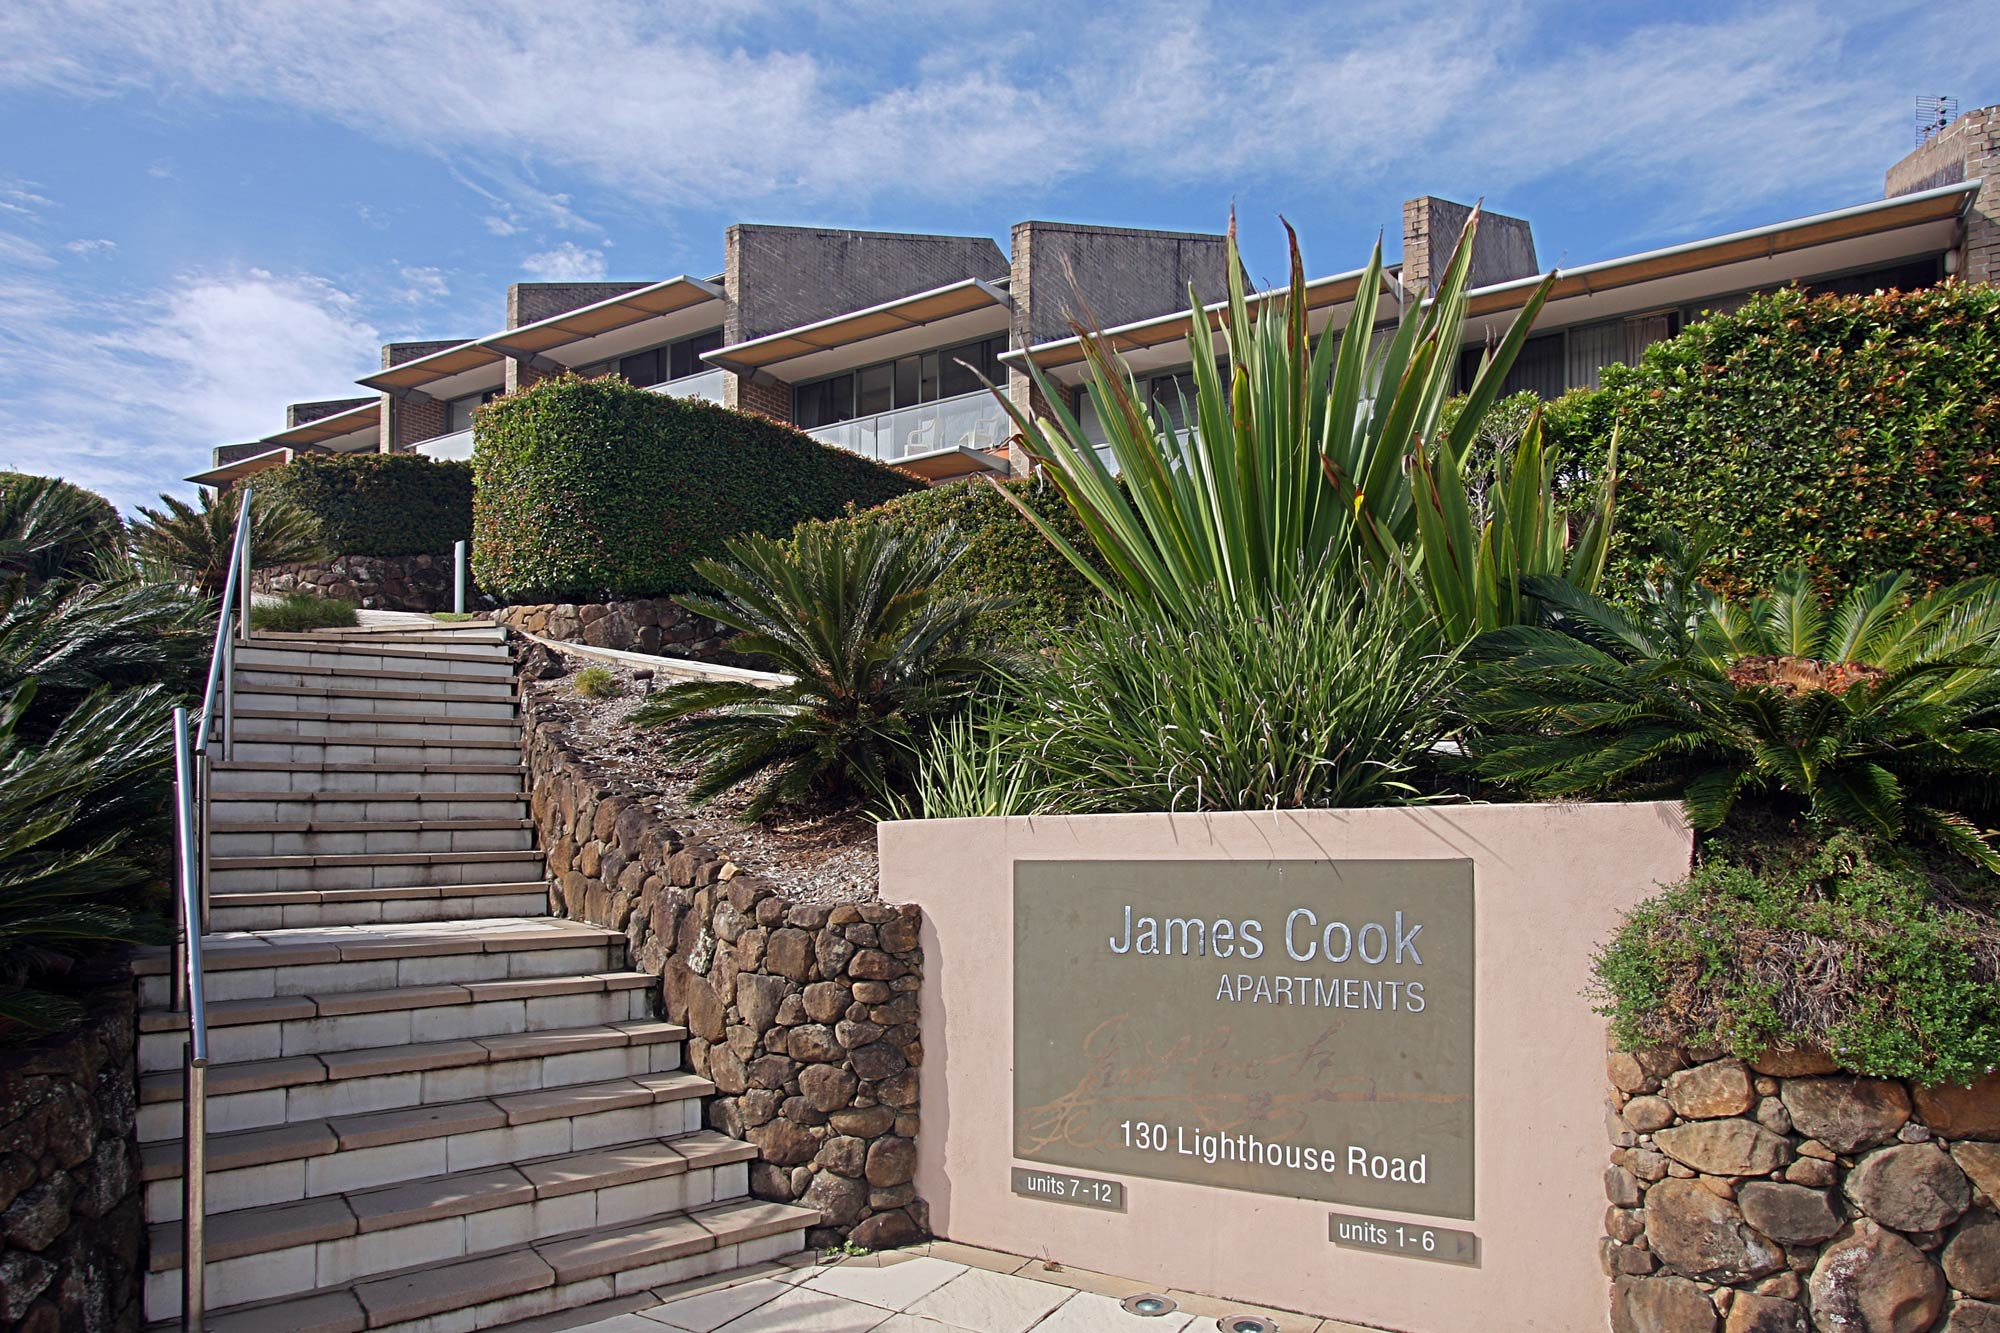 11 James Cook Apartment Clarkes Beach   Entrance Stairs